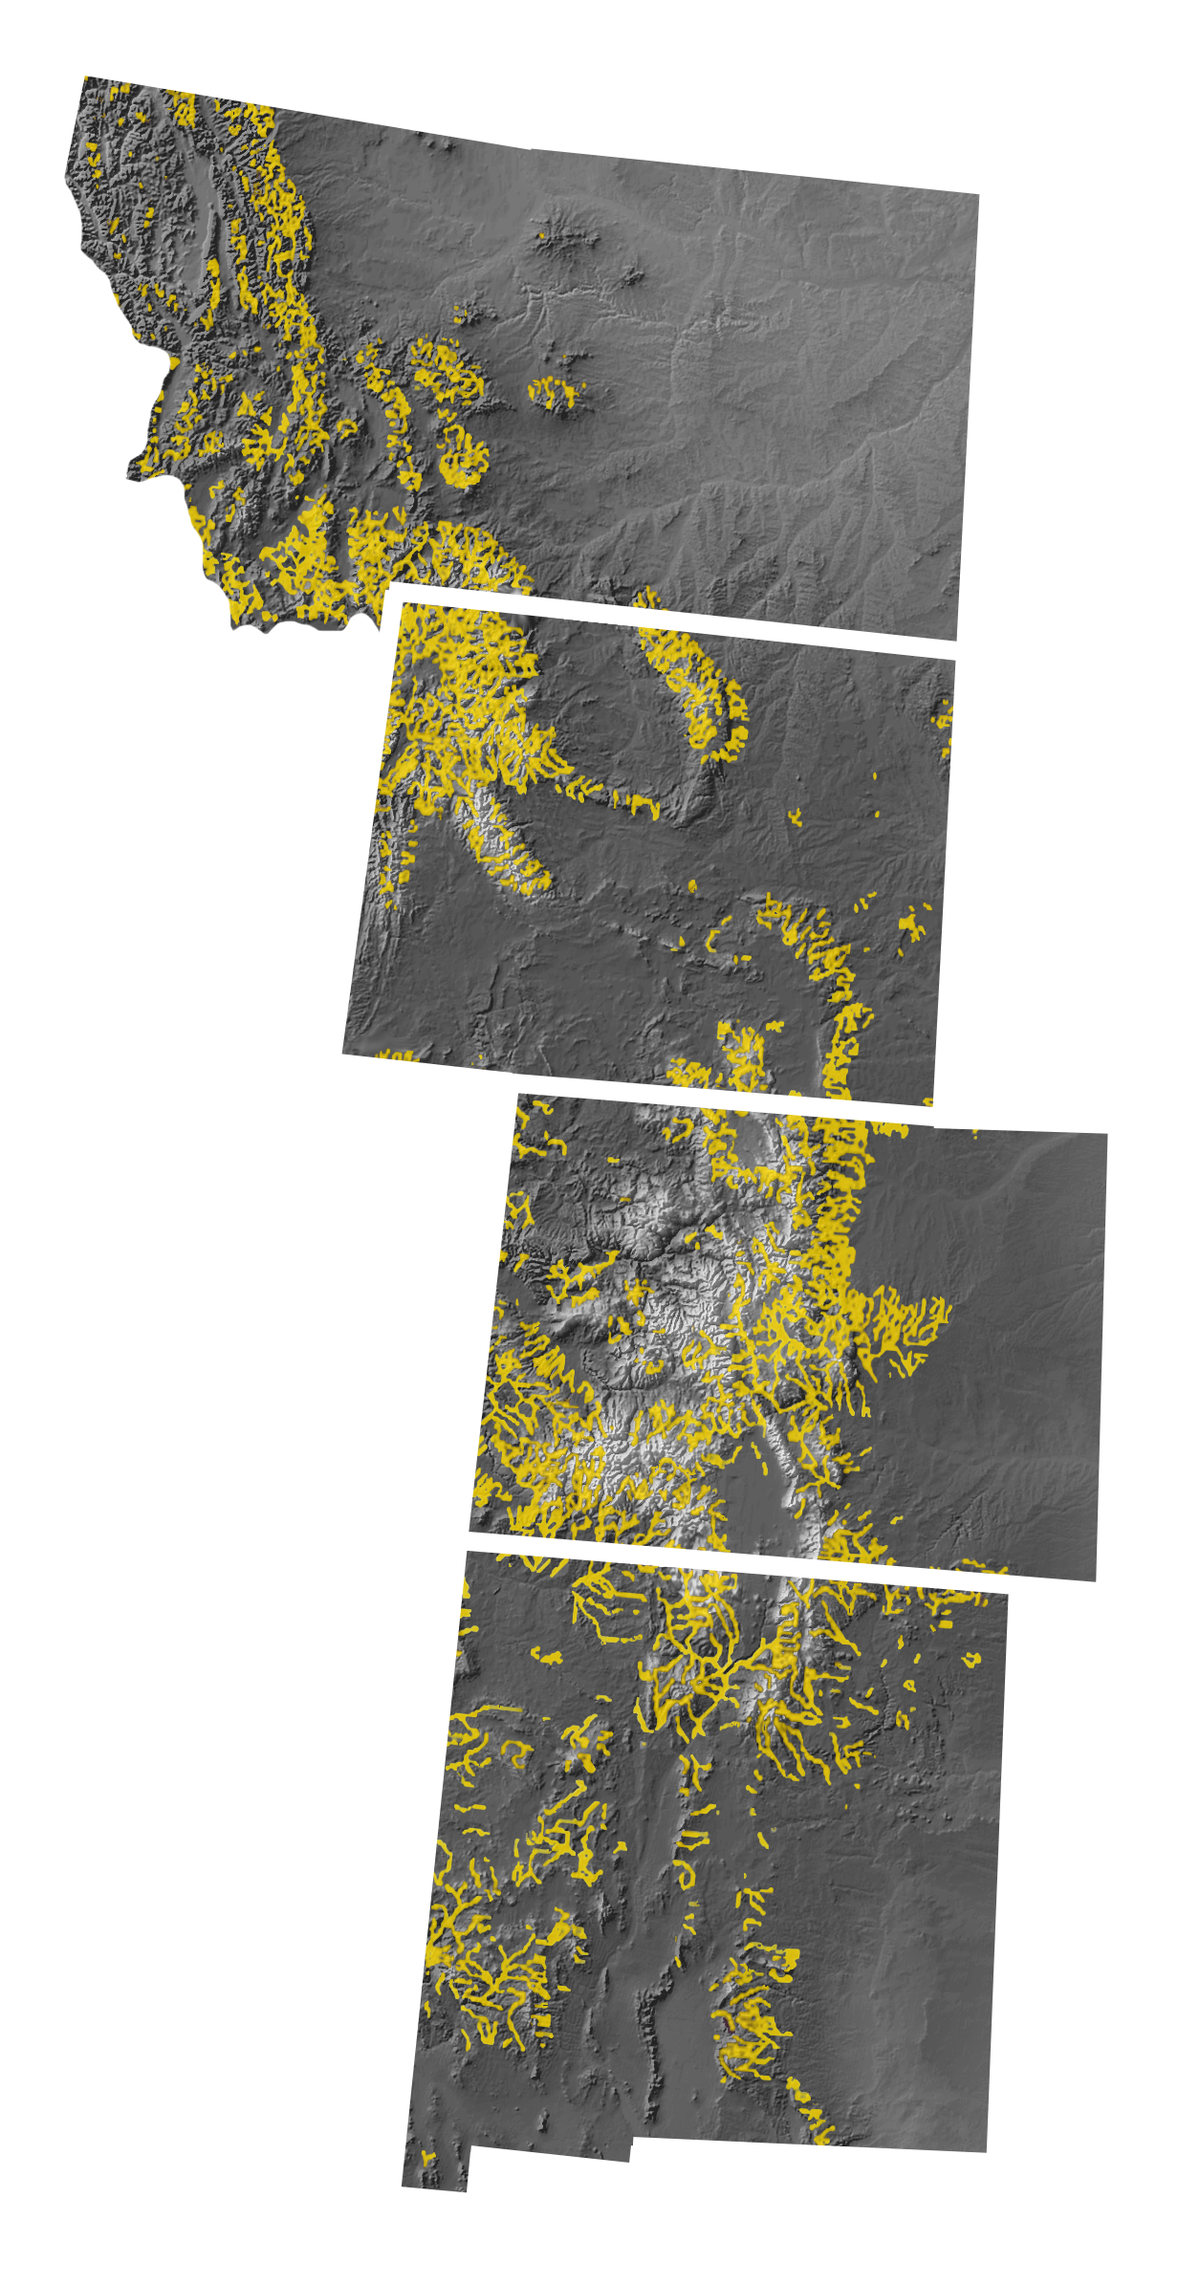 Map of Montana, Wyoming, Colorado, and New Mexico, with areas that have